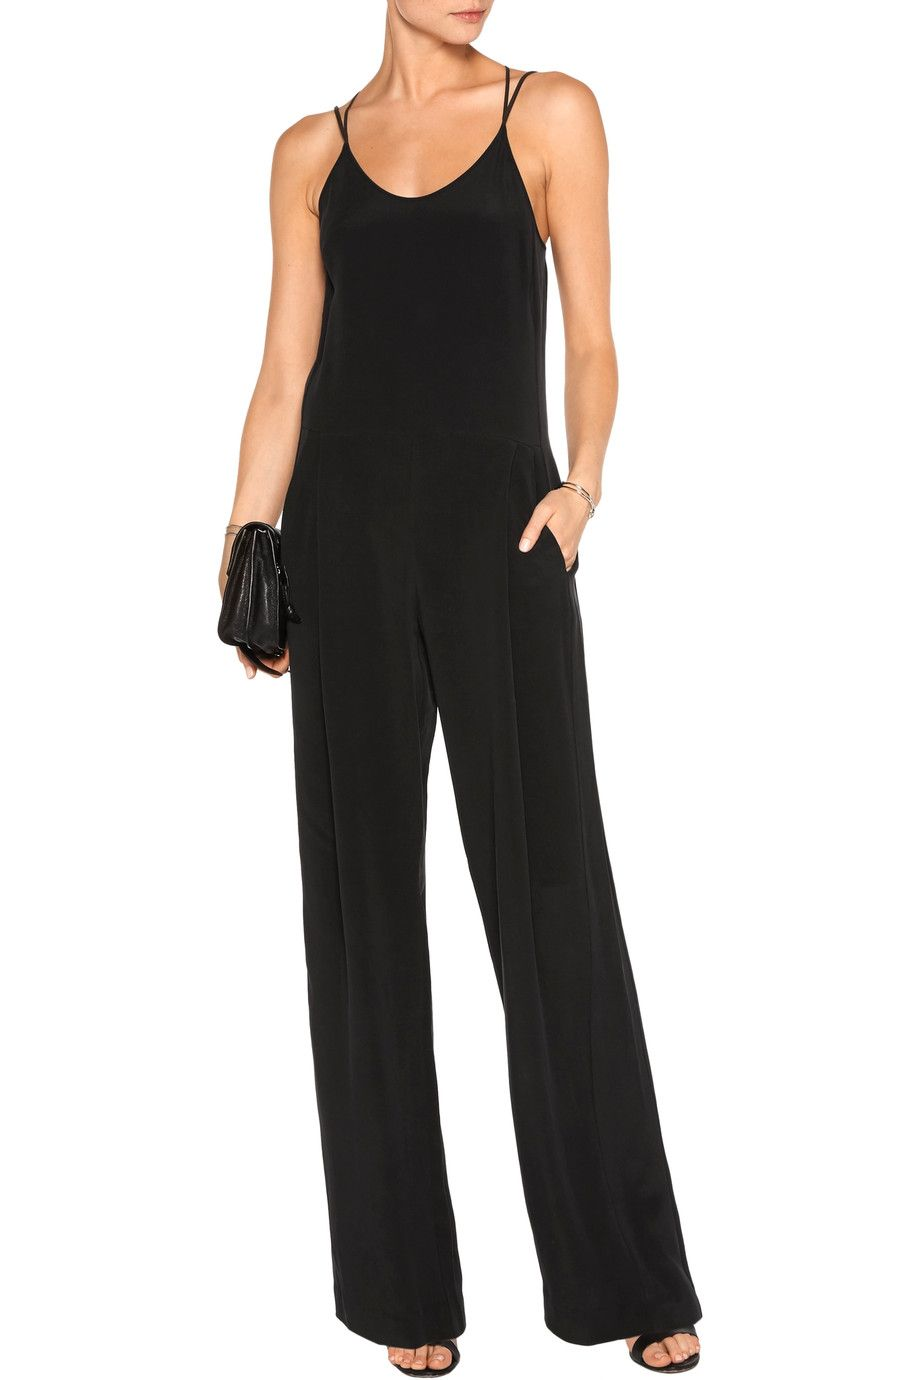 Shop on-sale L'Agence Poppy brushed-silk jumpsuit. Browse other discount